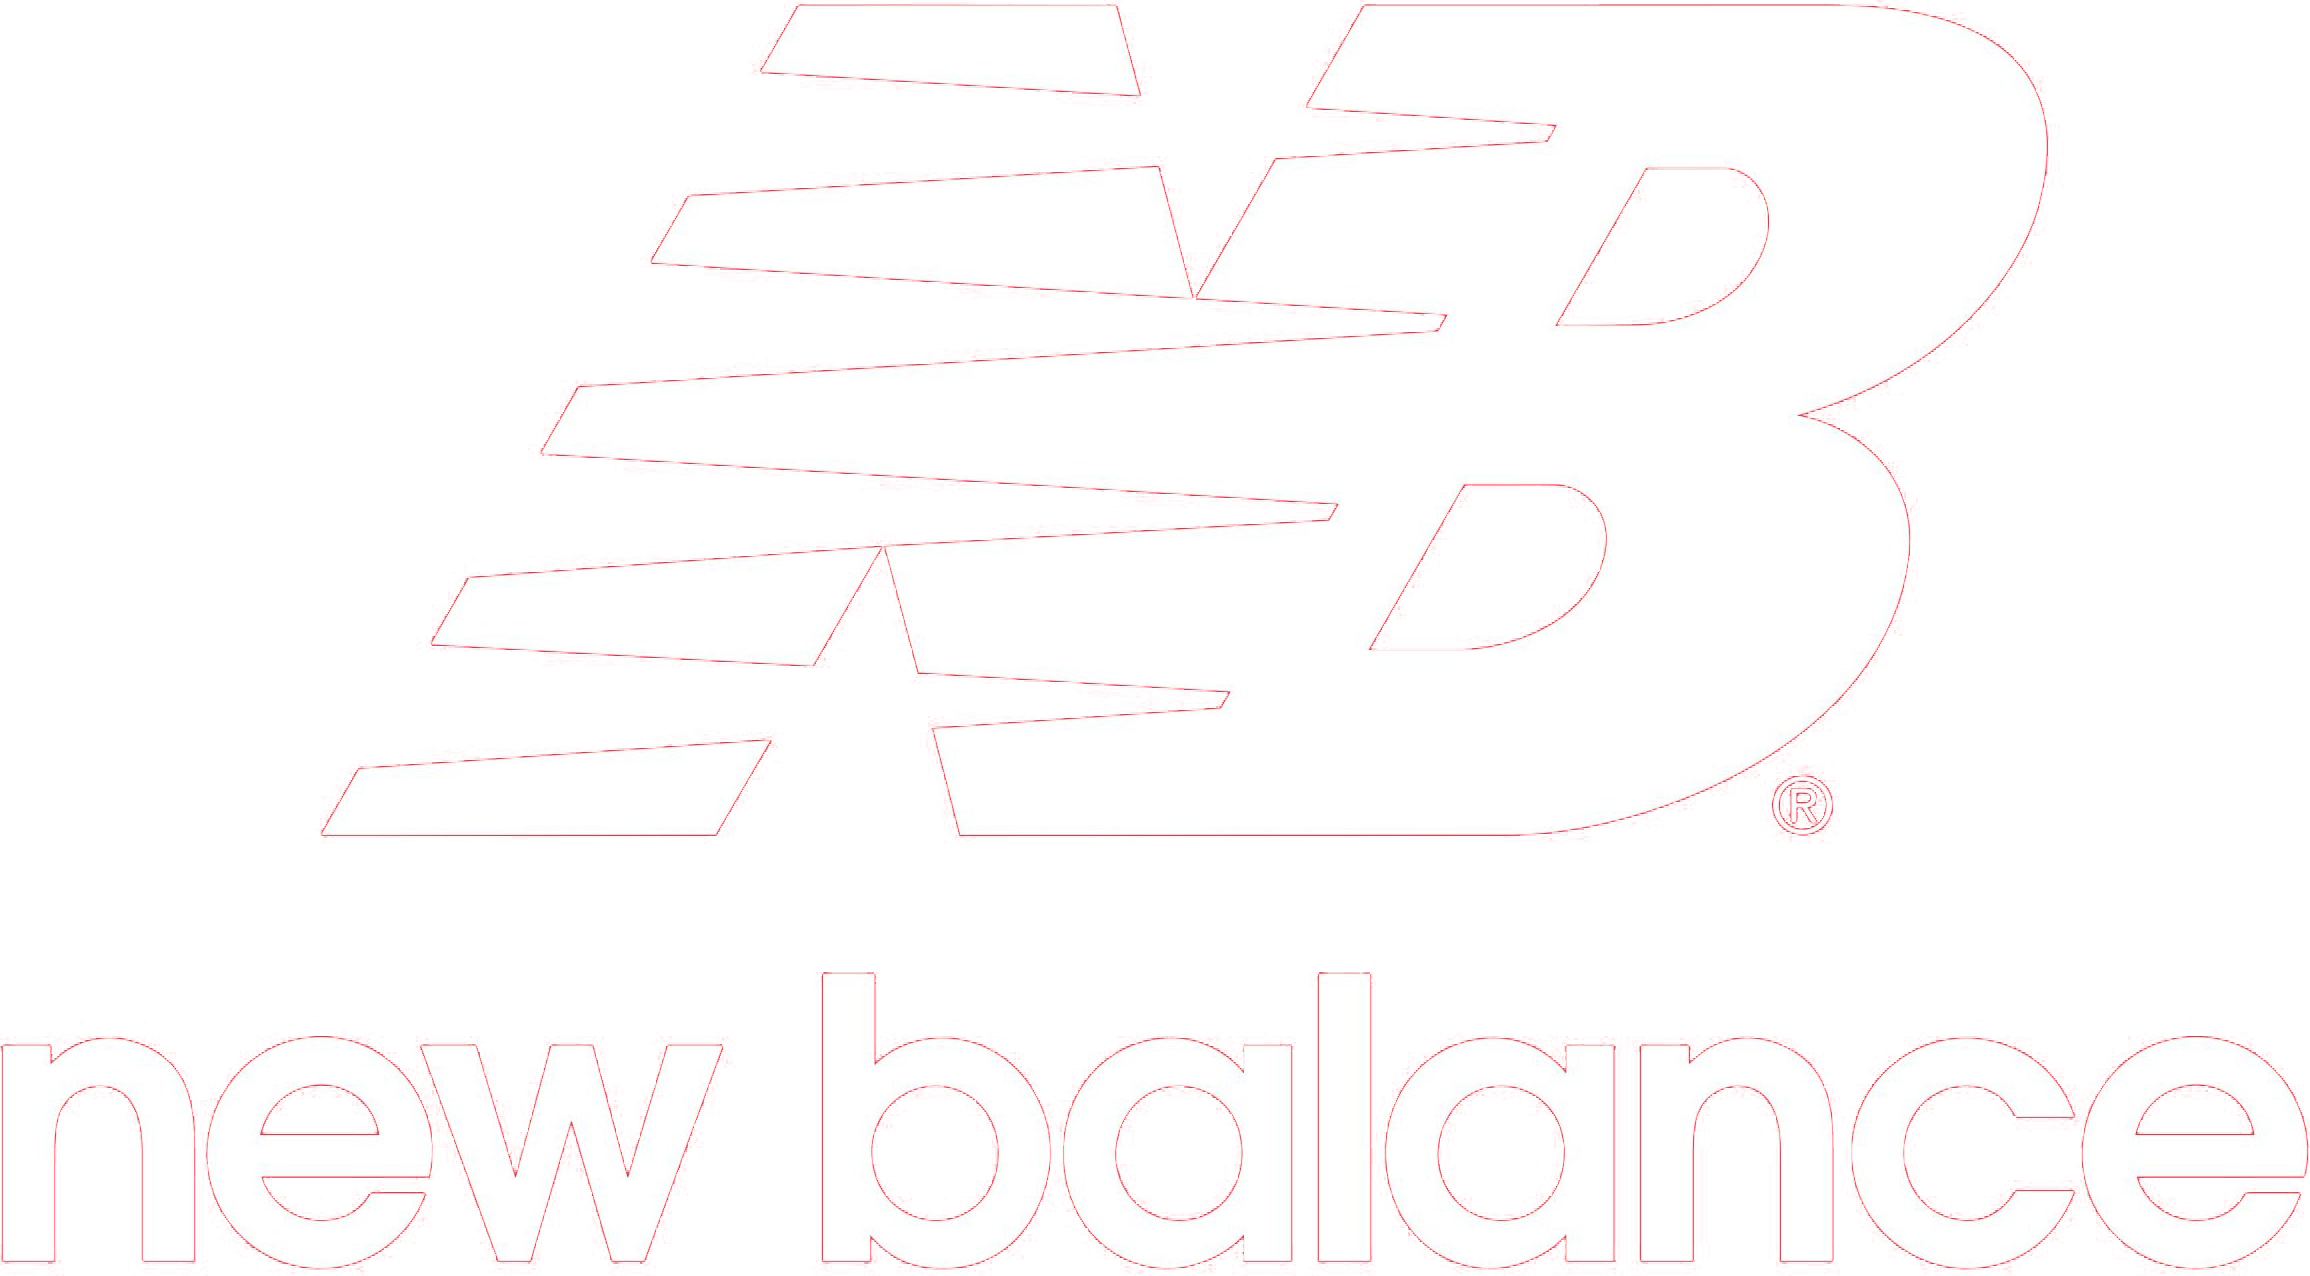 New Balance Logo Transparent - New Balance Logo PNG